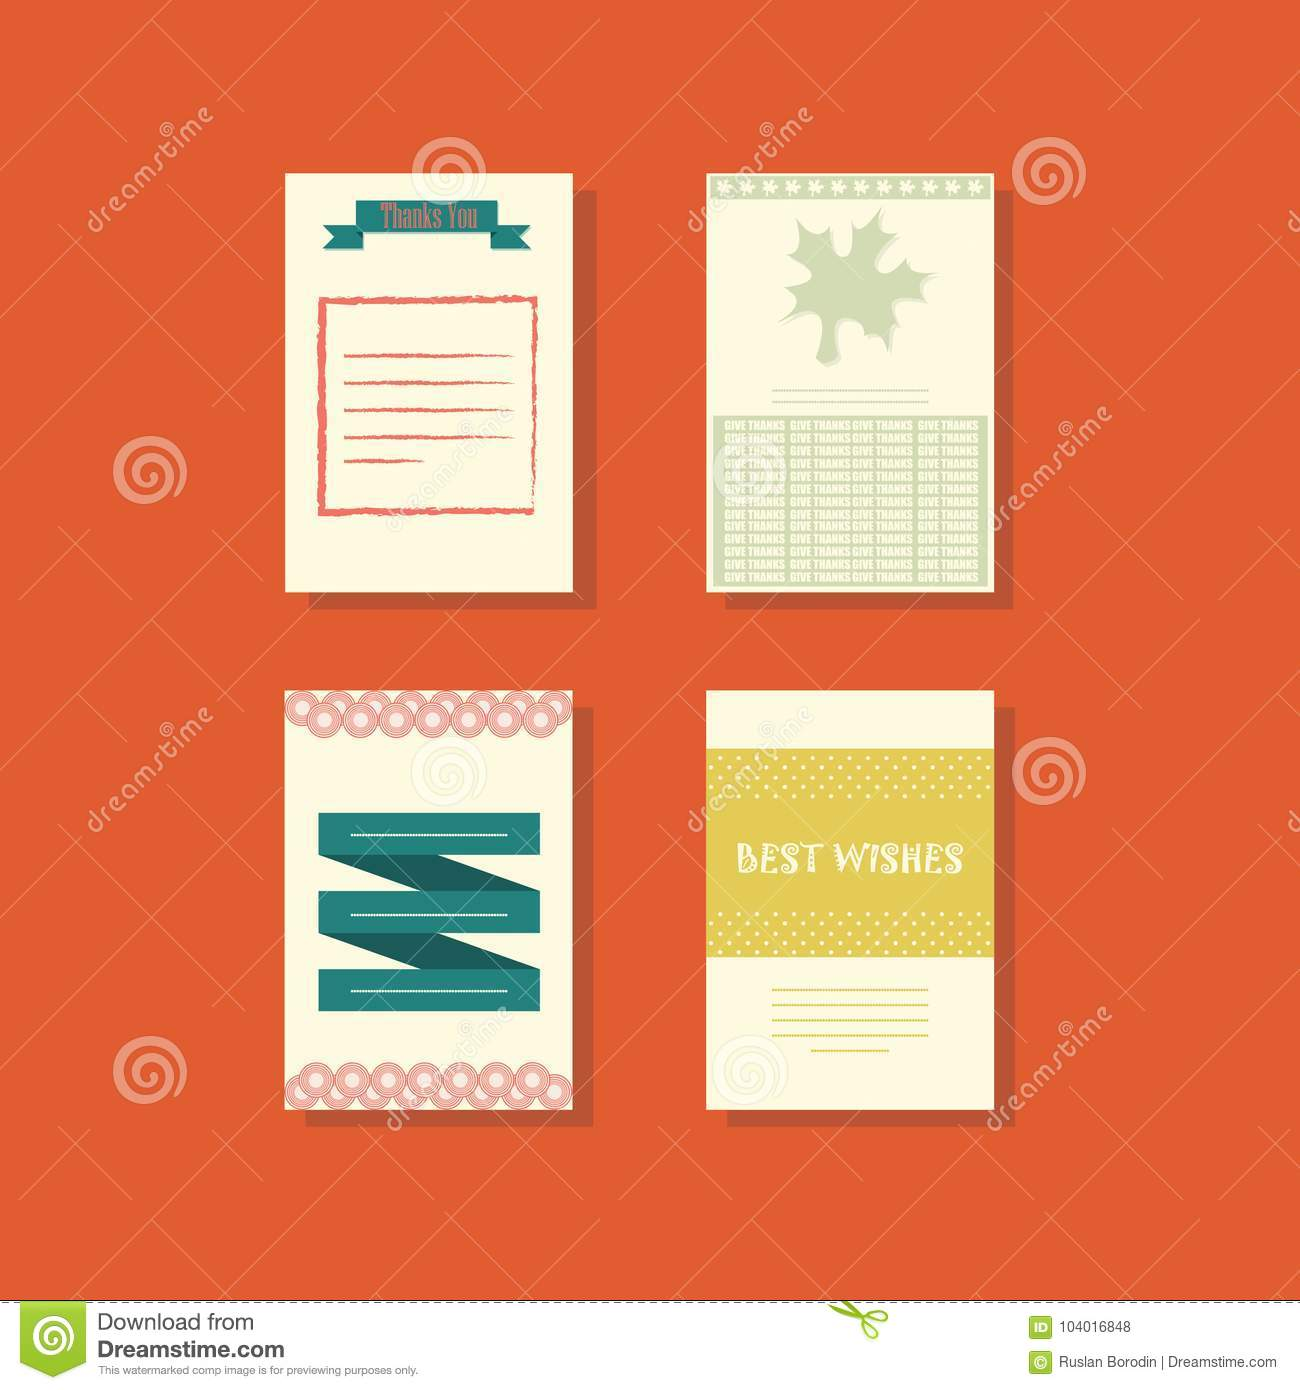 Several greeting cards with different designs the concept of a several greeting cards with different designs the concept of a holiday vector illustration m4hsunfo